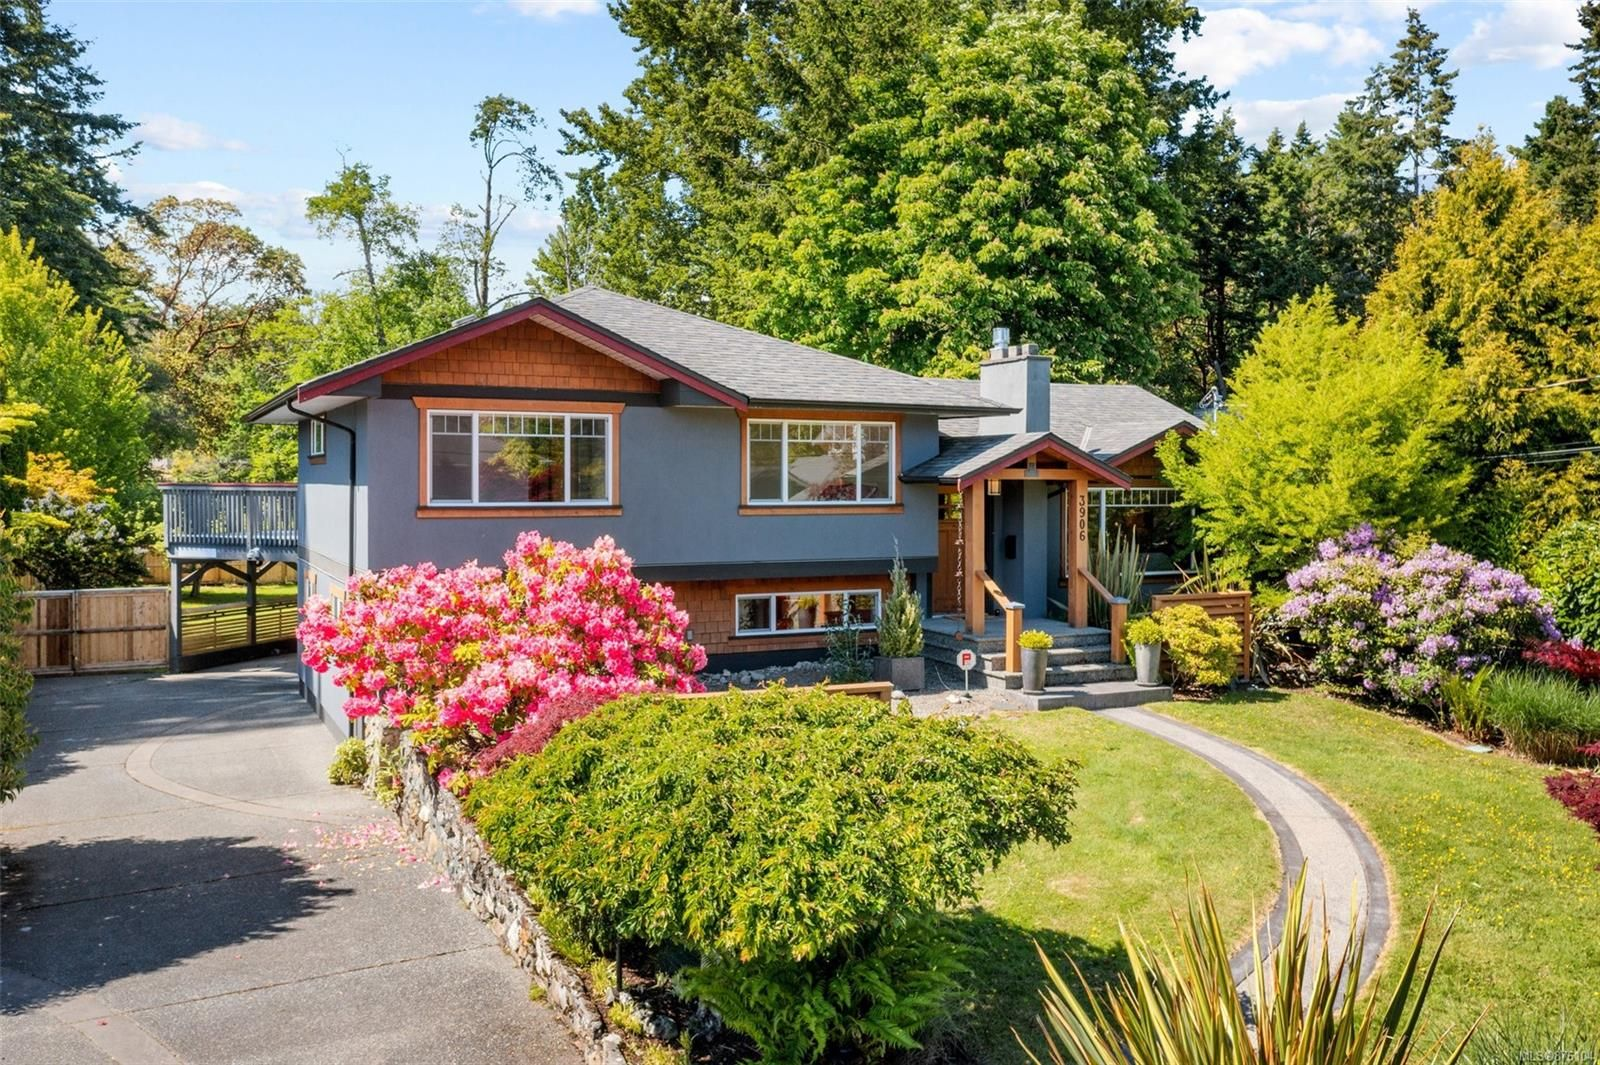 Main Photo: 3906 Rowley Rd in : SE Cadboro Bay House for sale (Saanich East)  : MLS®# 876104